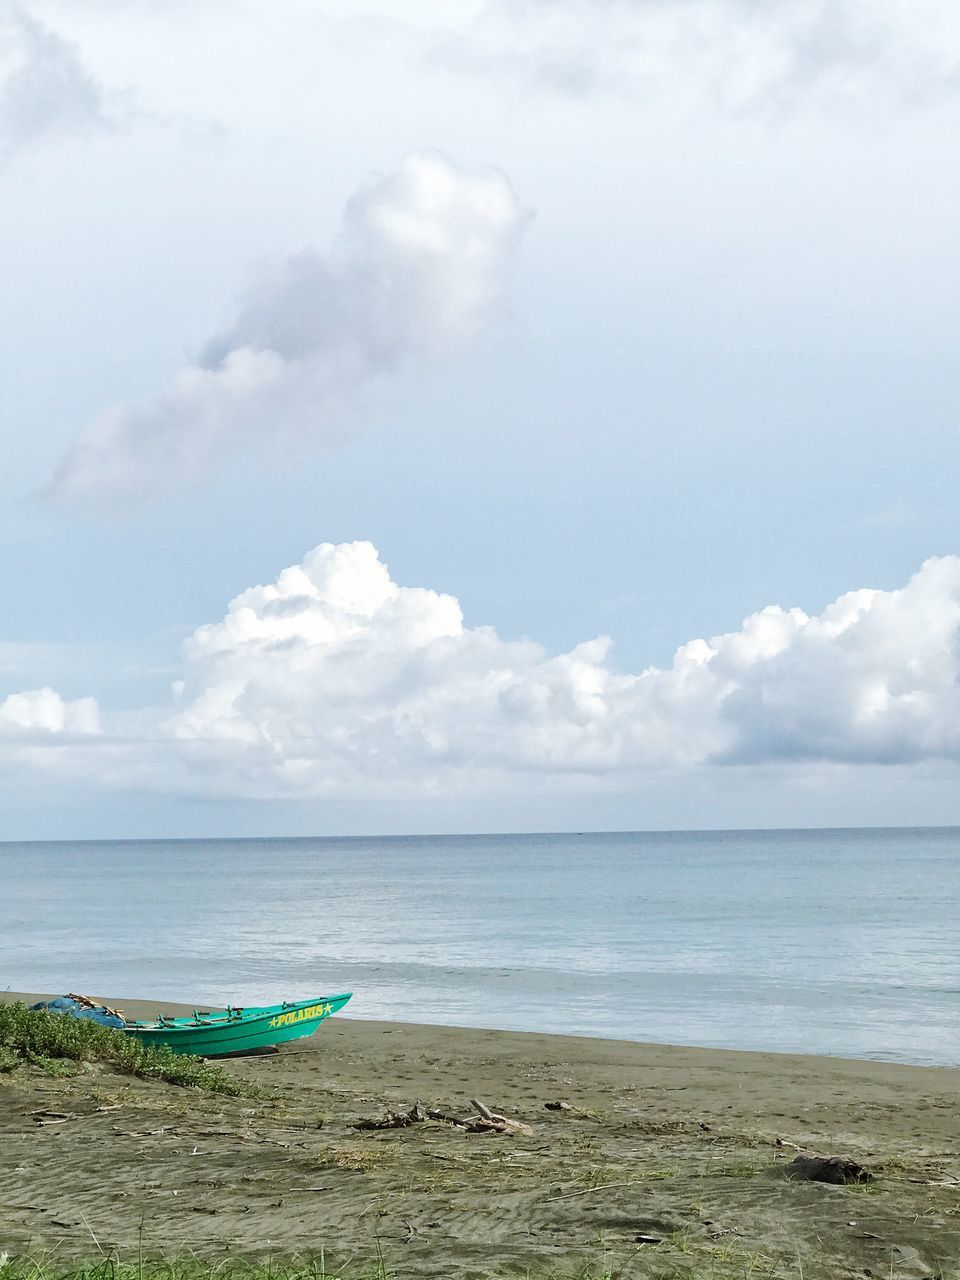 sea, beach, sky, horizon over water, water, cloud - sky, shore, sand, nature, beauty in nature, scenics, tranquility, day, nautical vessel, tranquil scene, outdoors, no people, outrigger